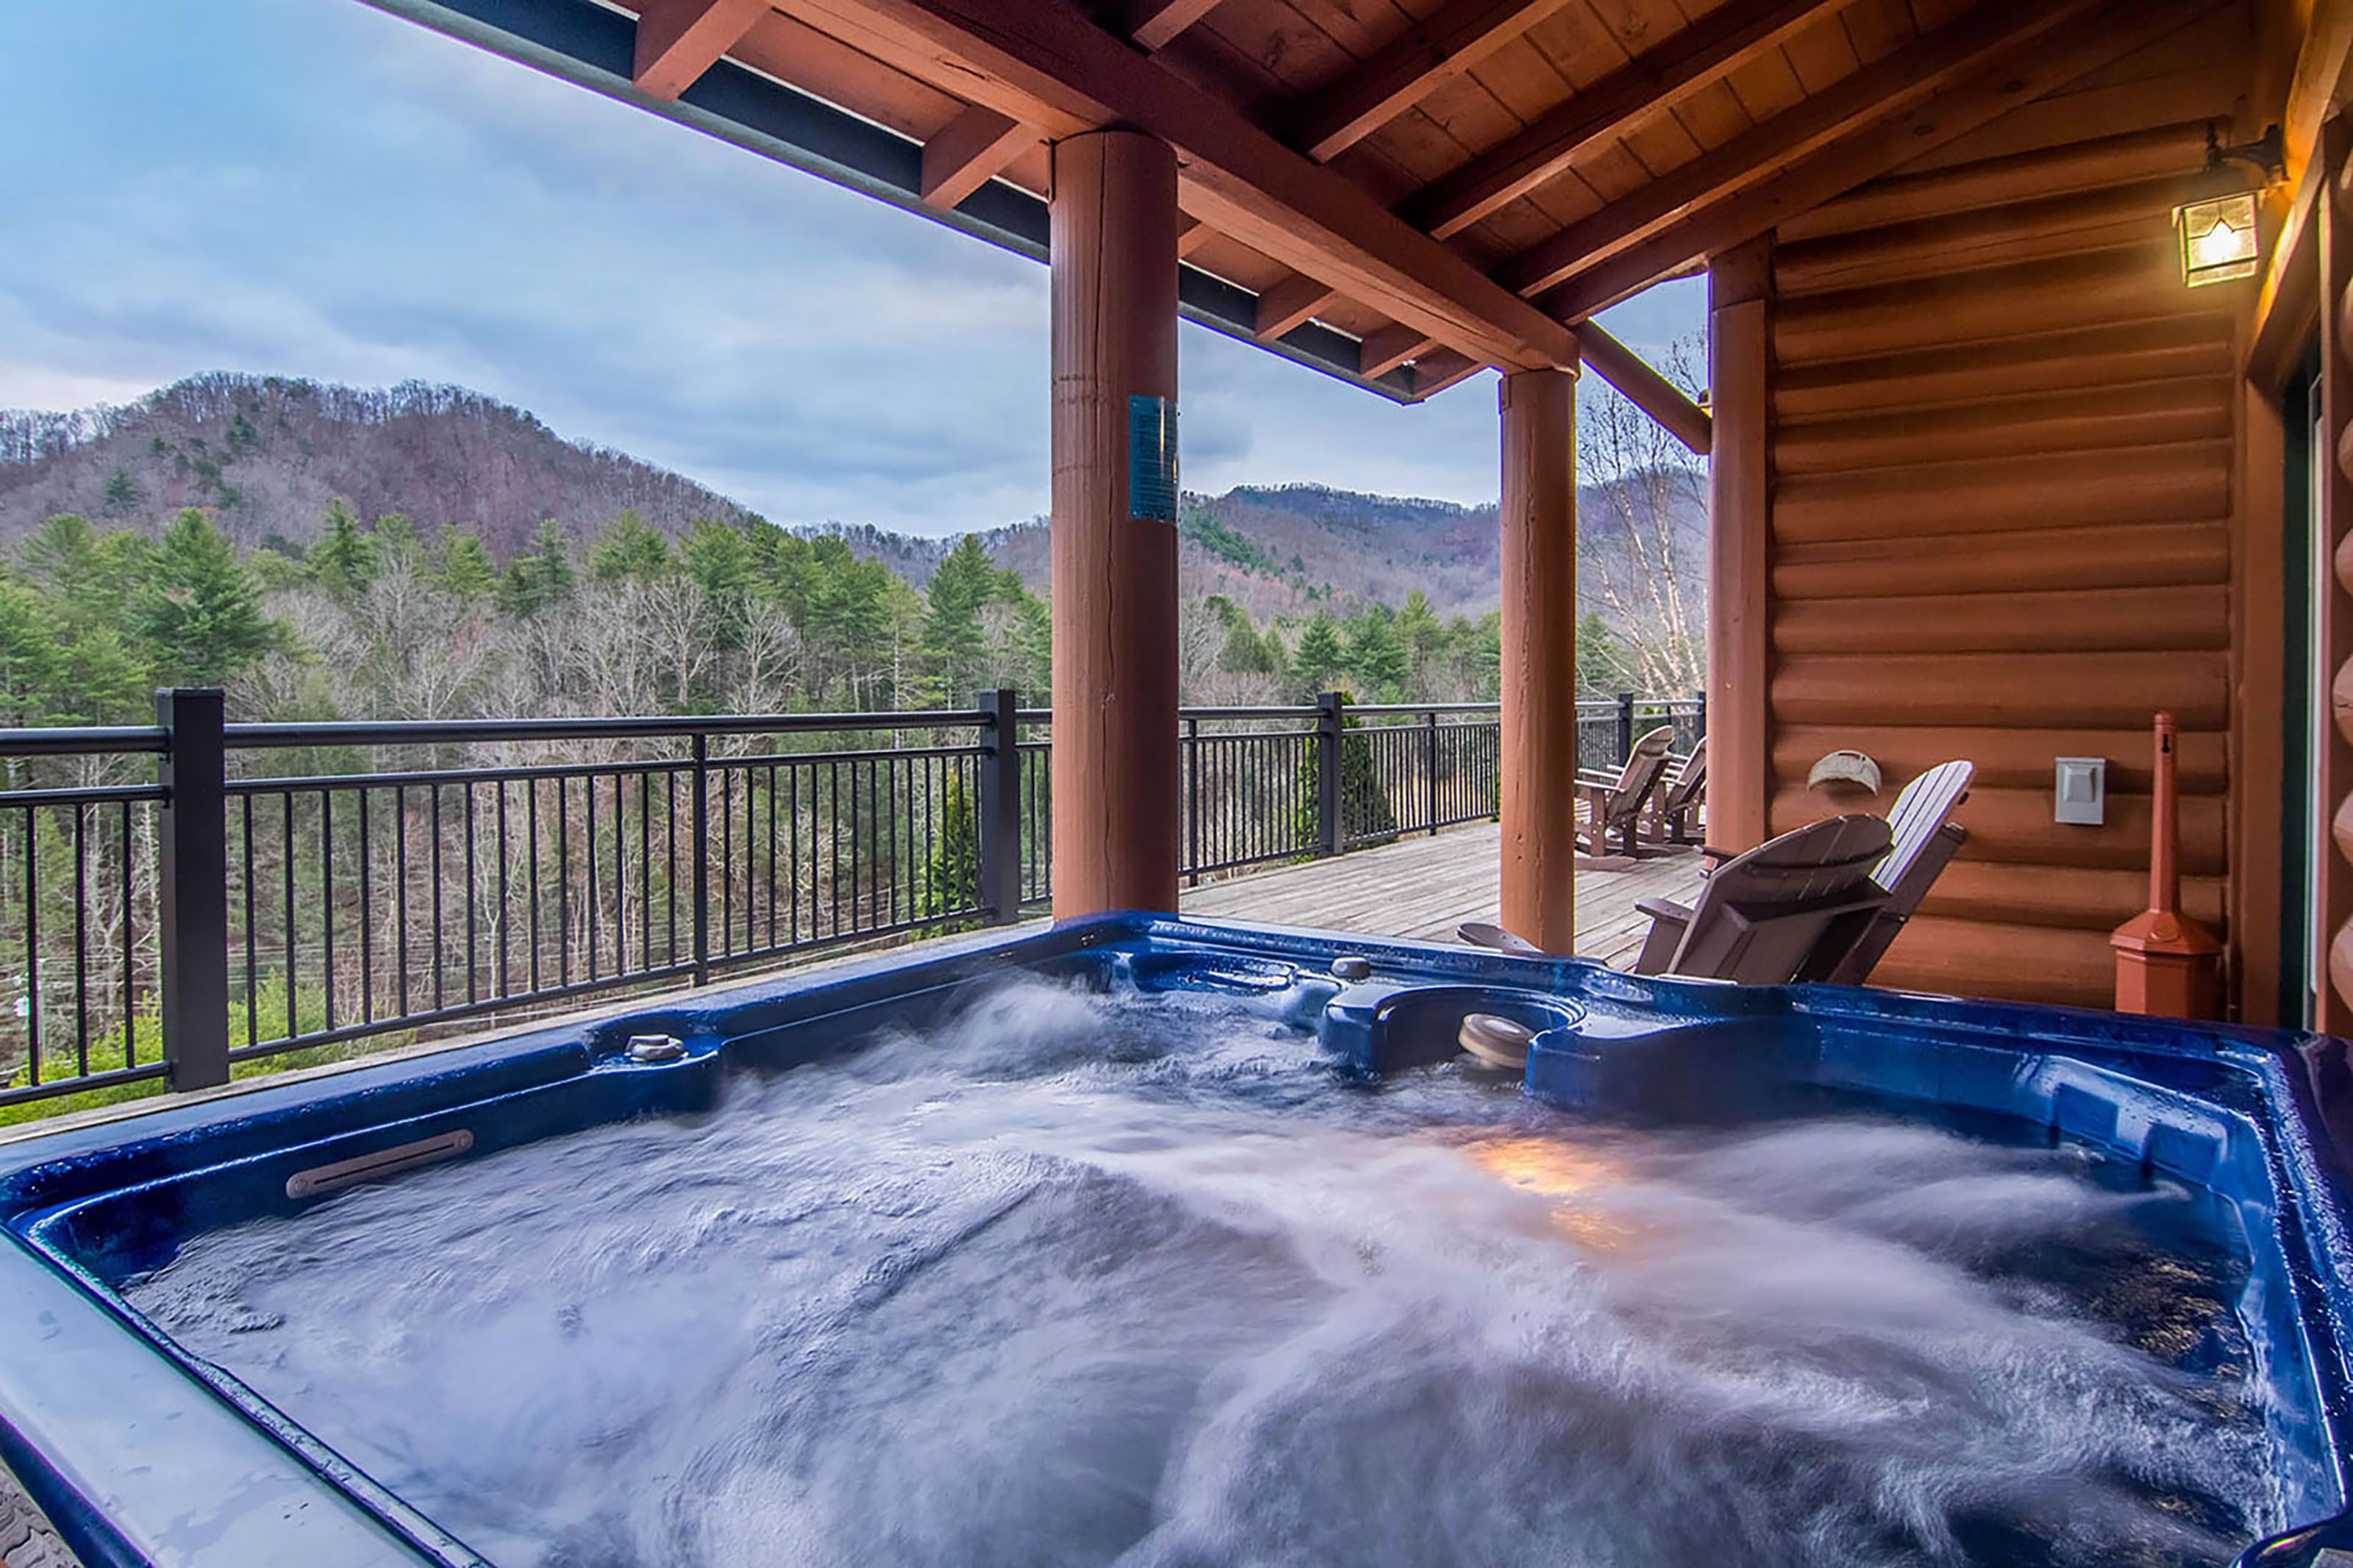 in cabin tennessee cinema georgia pictures large sleeps smoky tn mountain curtain heaven pool north hottub forge carolina honey cabins gatlinburg pigeon bear rentals jacuzzi bedroom for with indoor